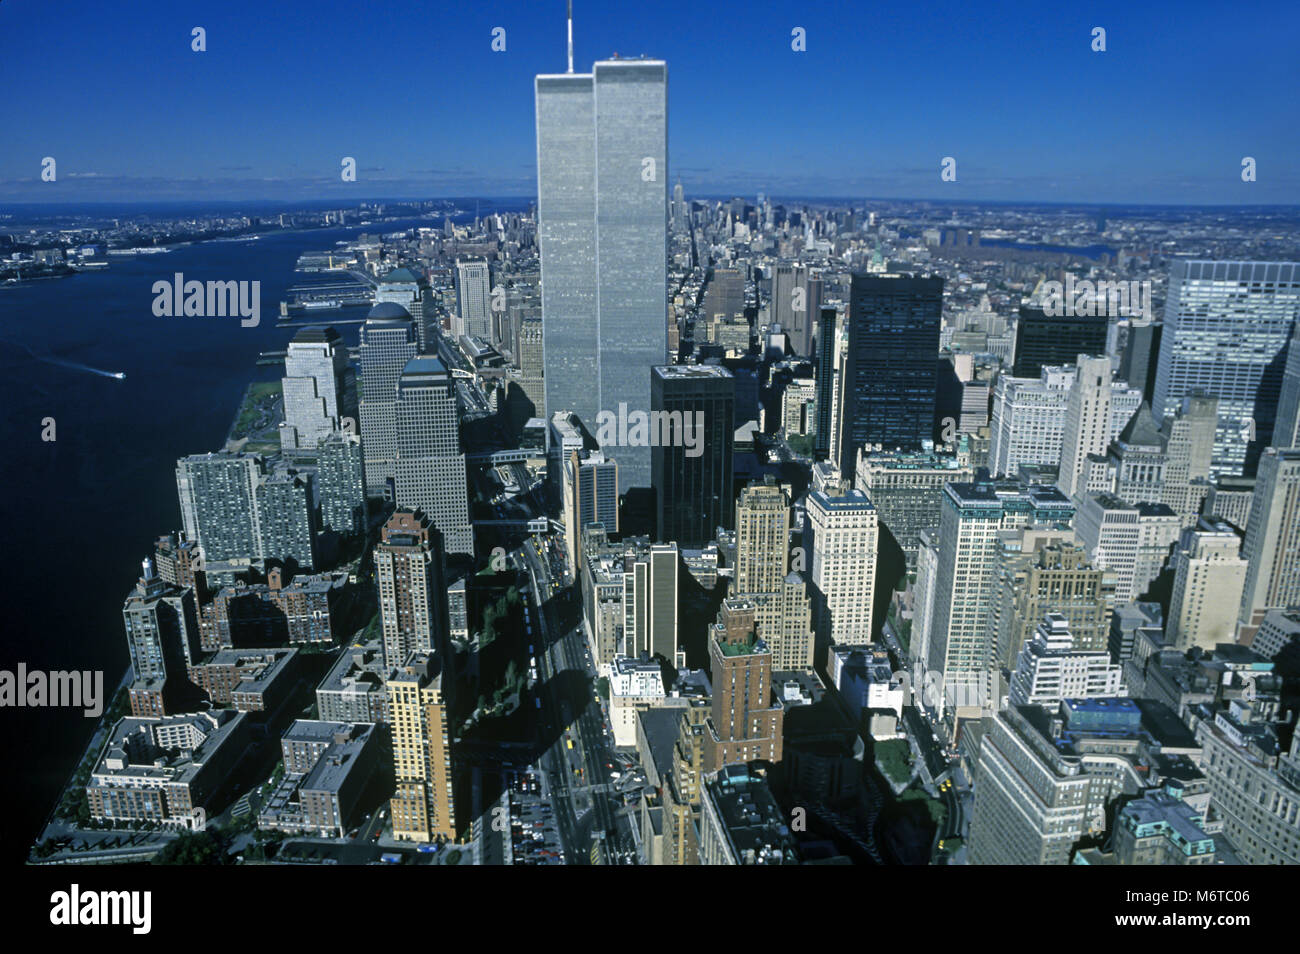 Wtc Twin Towers Manhattan Stock Photos & Wtc Twin Towers